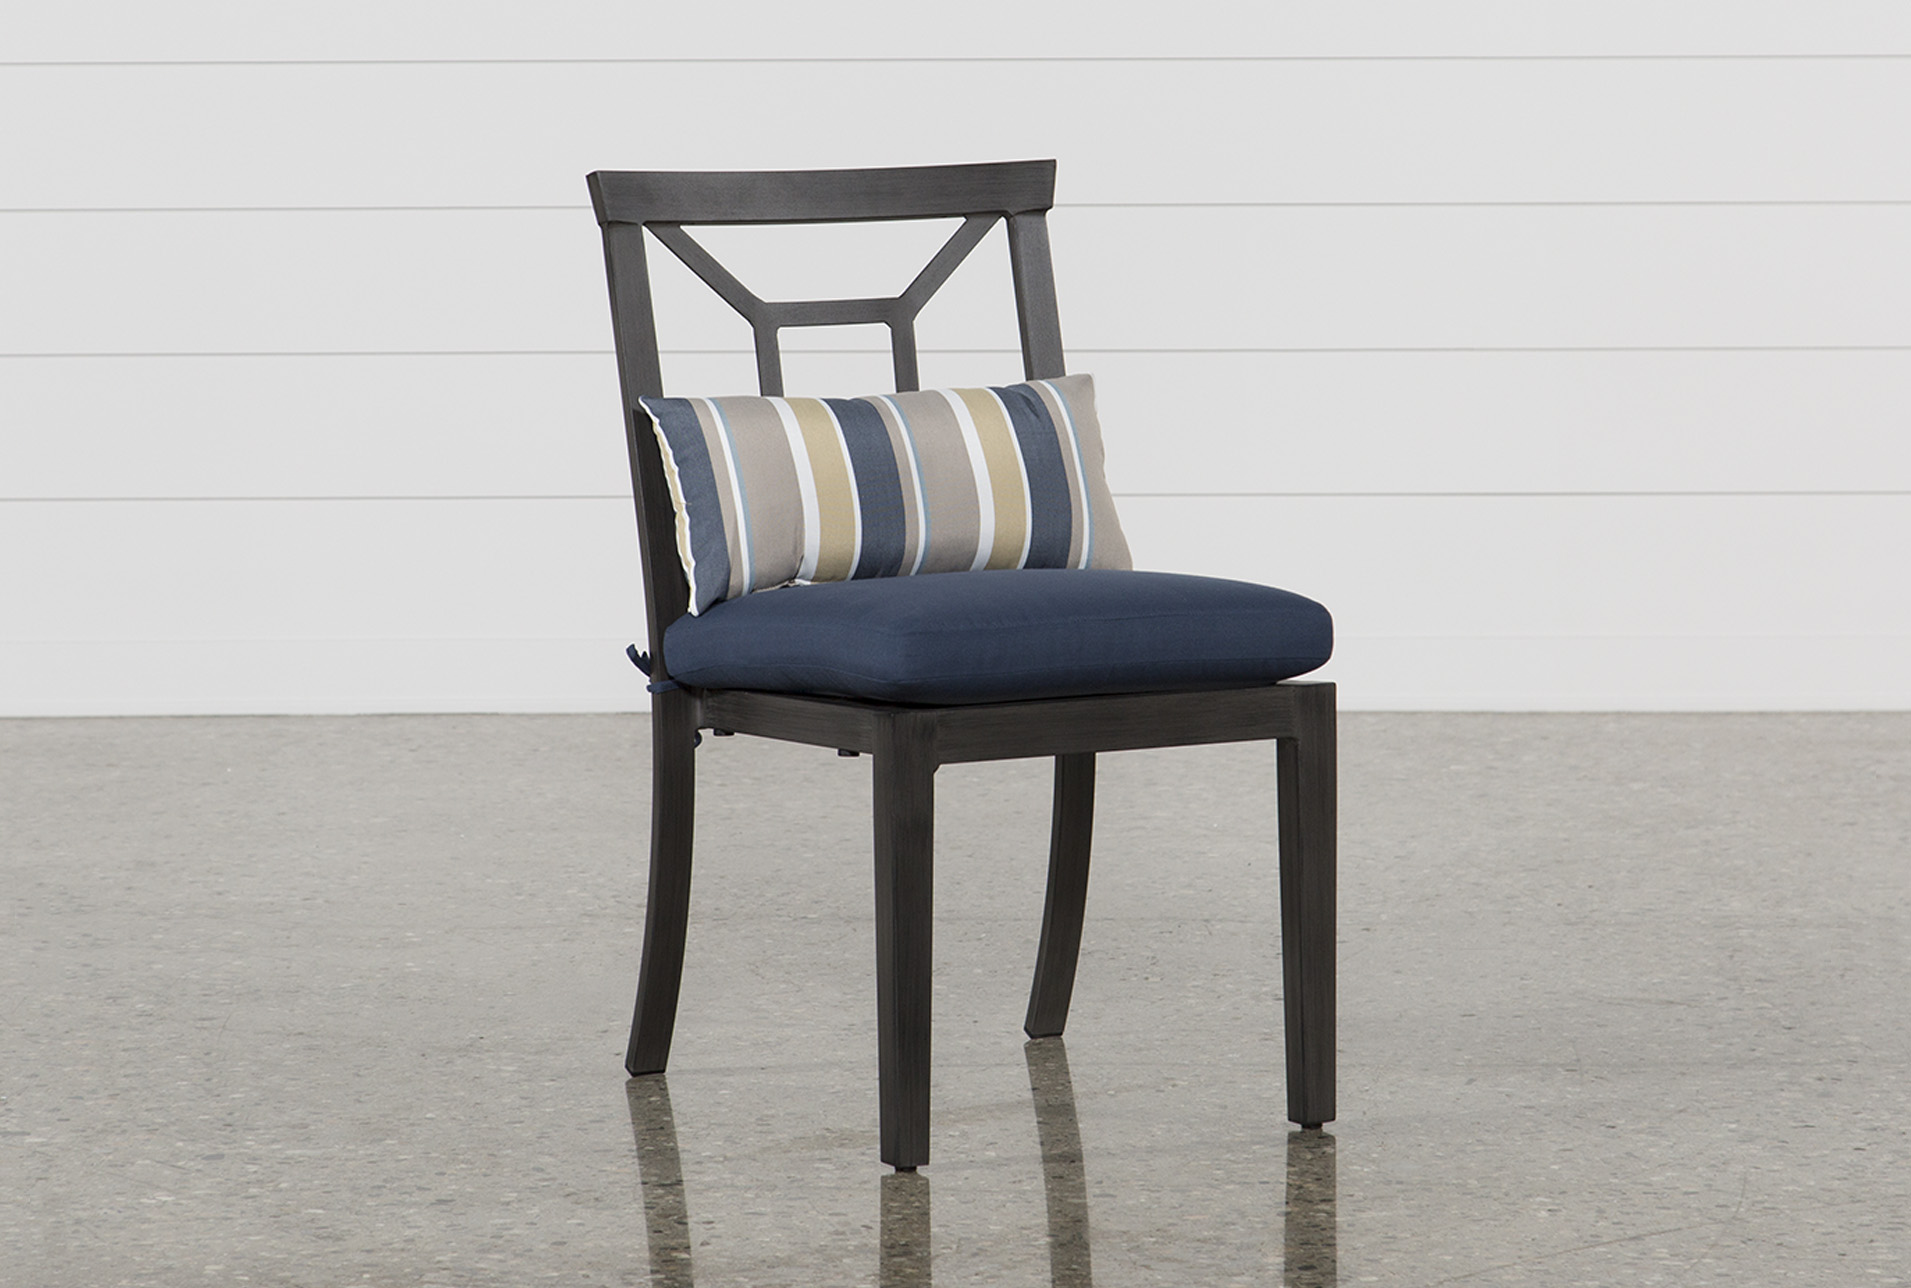 Martinique Navy Outdoor Dining Chair   Living Spaces on Living Spaces Outdoor Dining id=72220